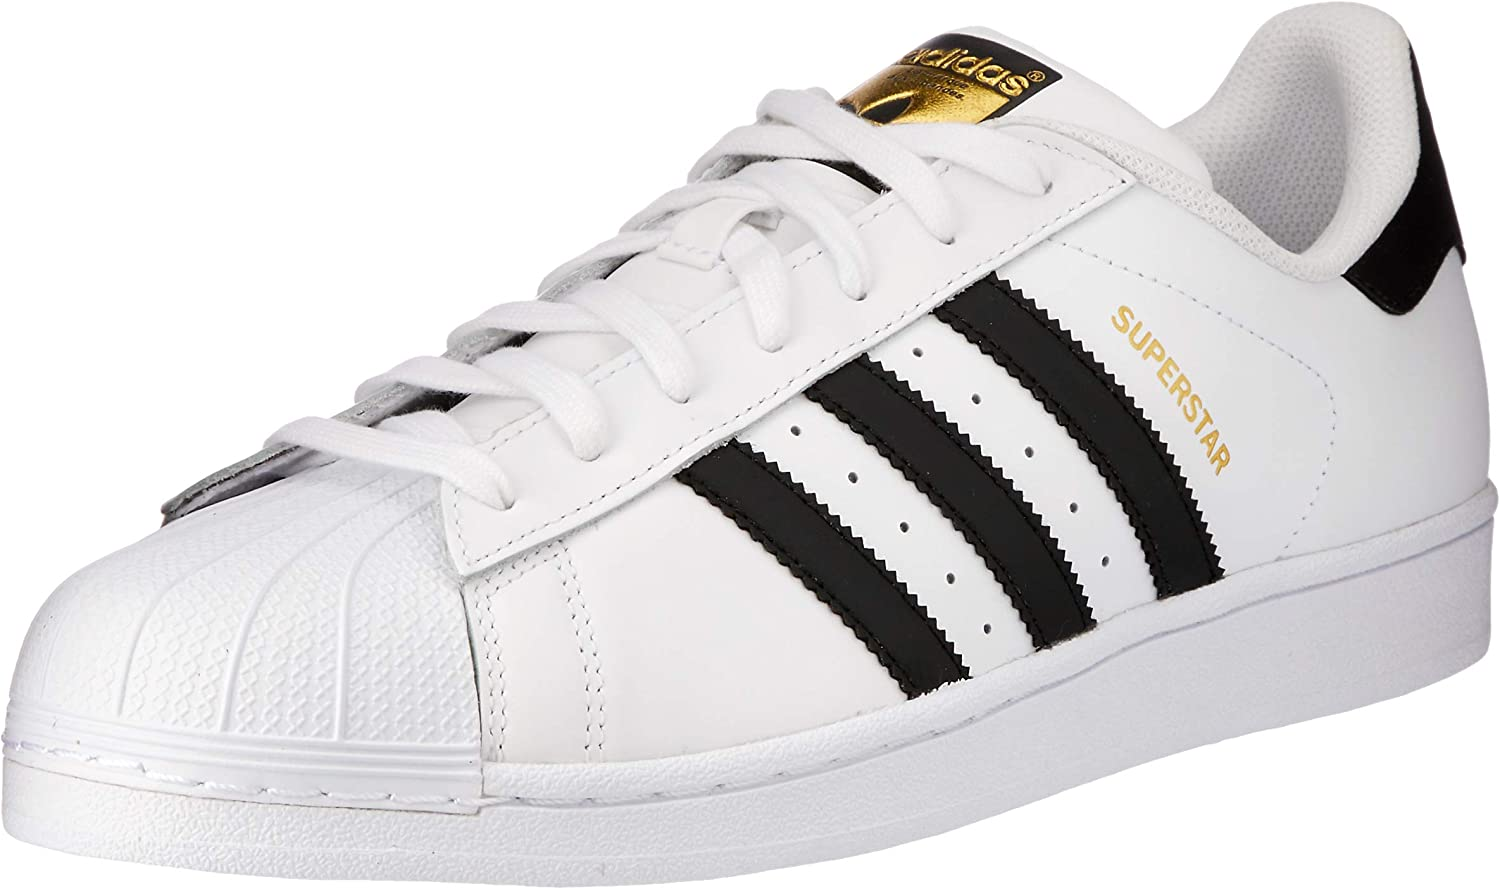 Adidas Originals  Superestrella Foundation Sautope da Ginnastica Unisex - Adulto